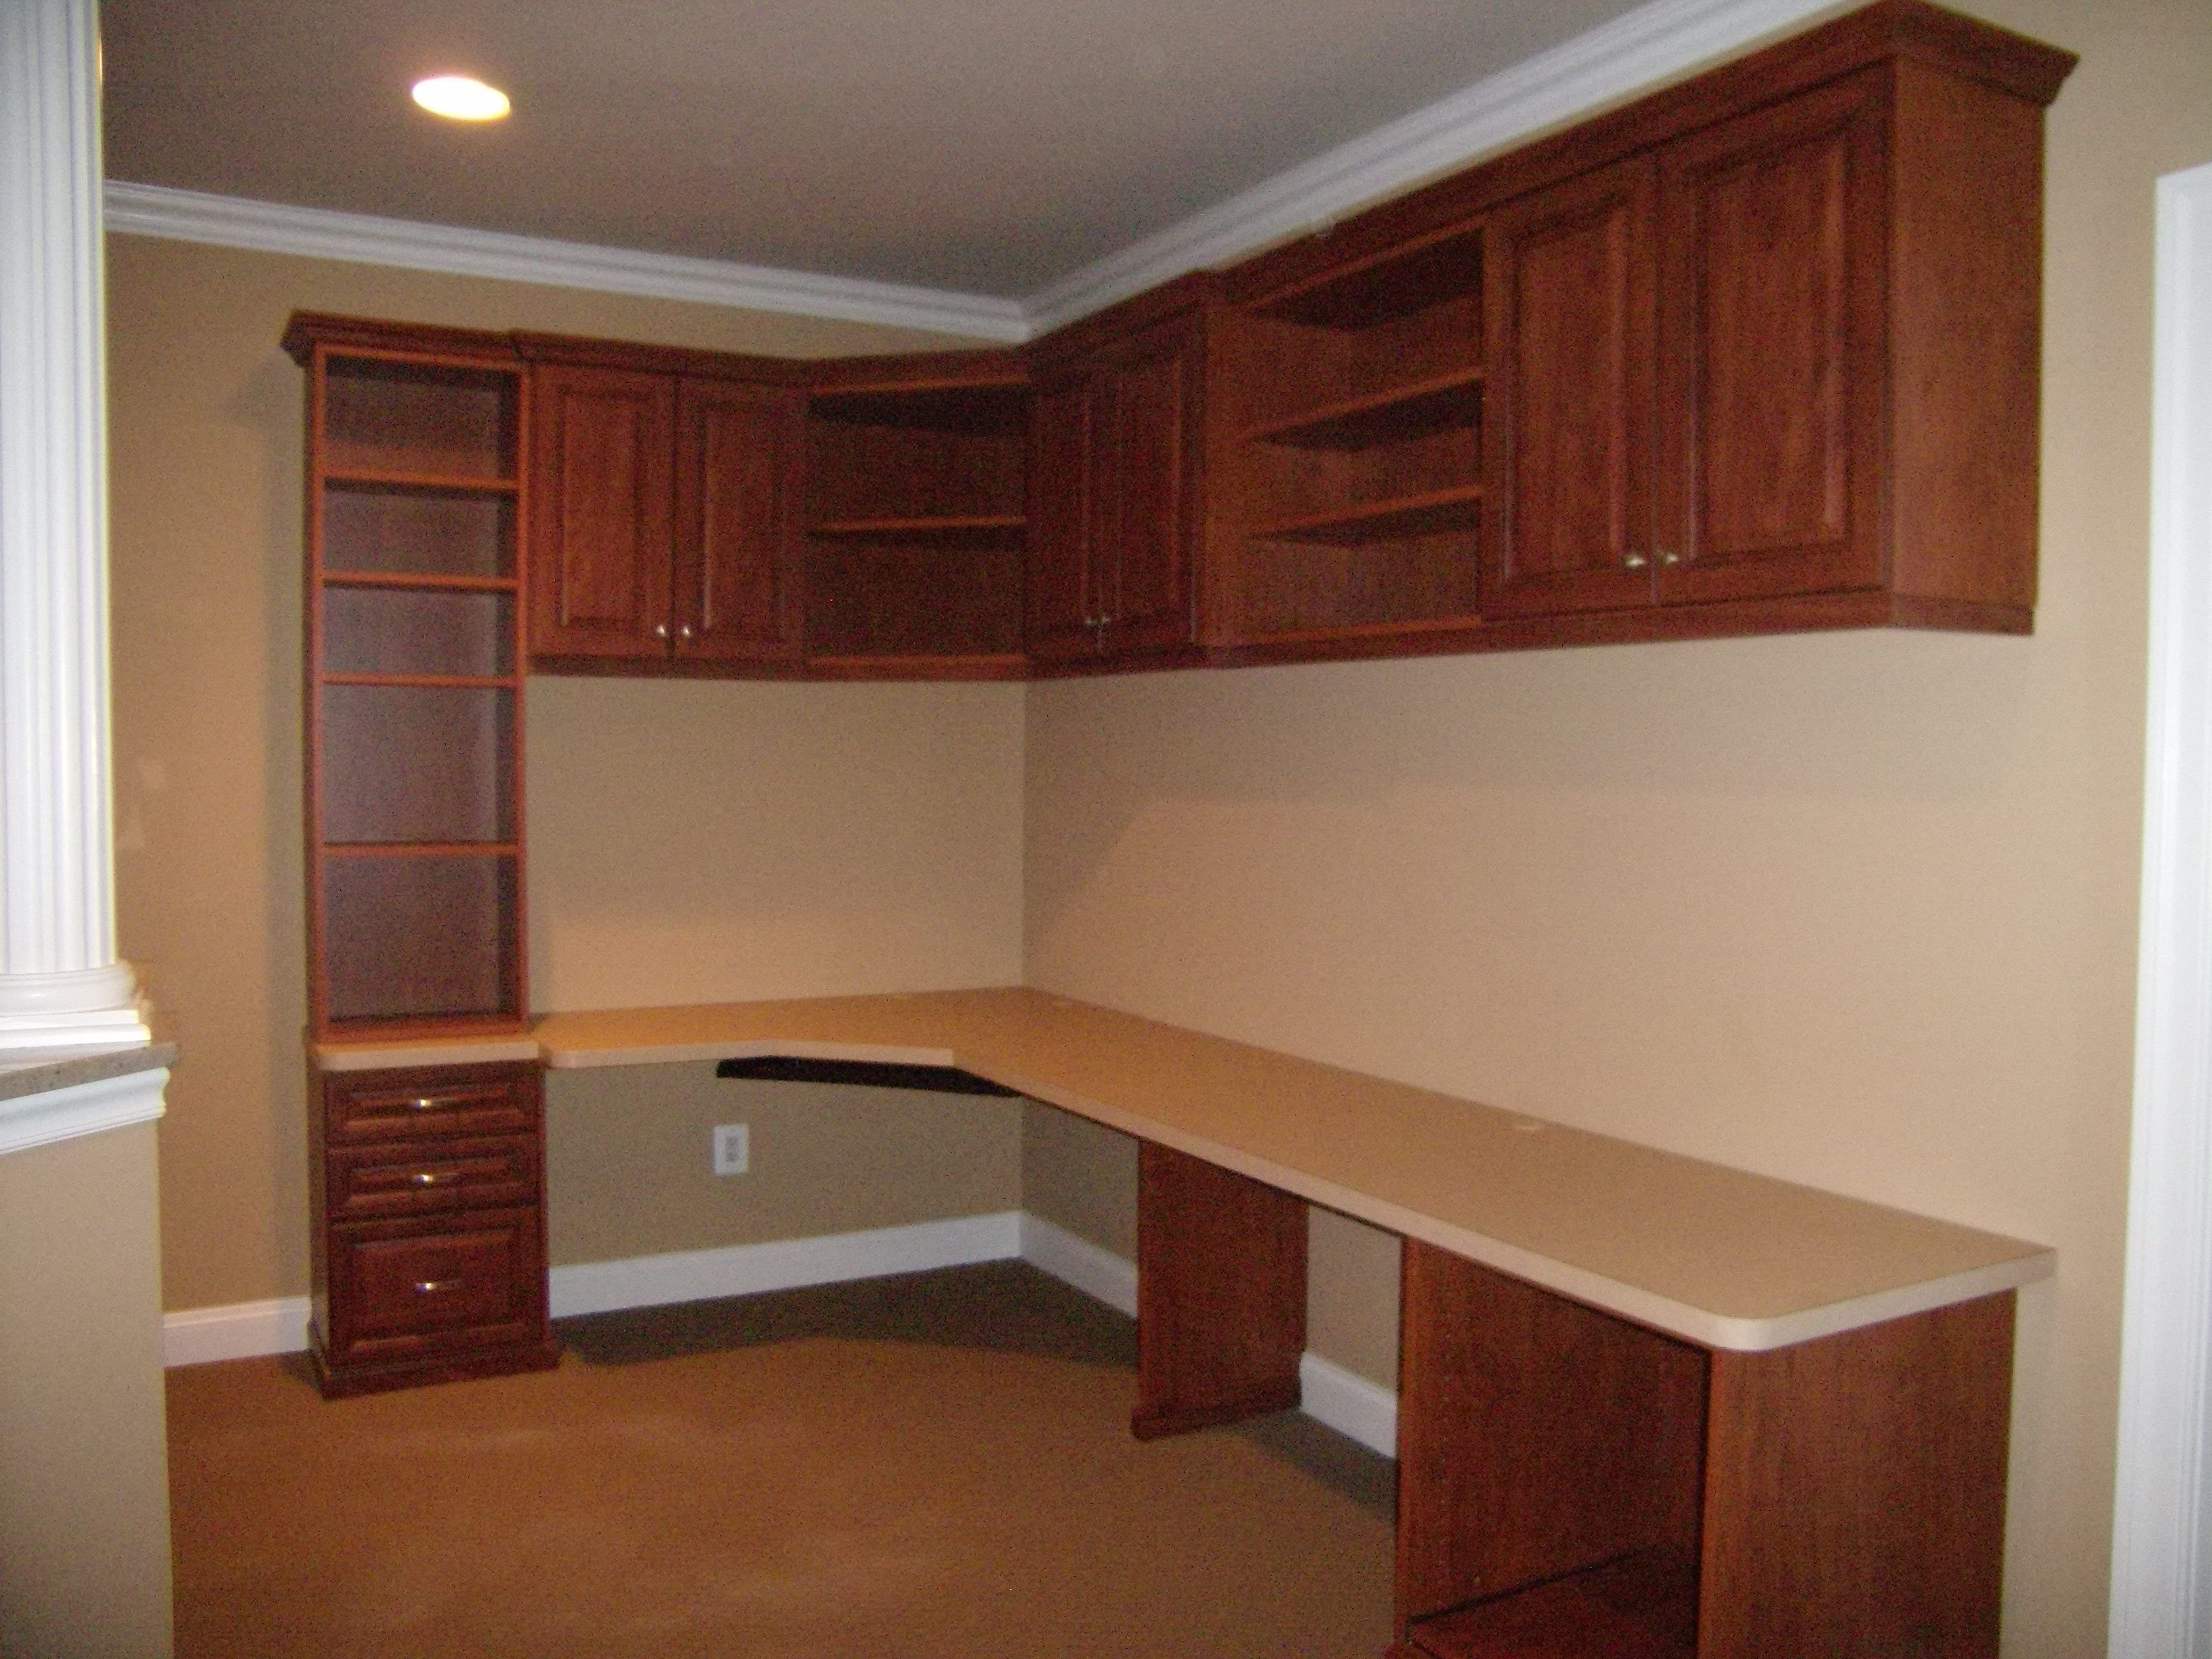 L Shaped Work Space With Overhead Shelves And Cabinets Design A